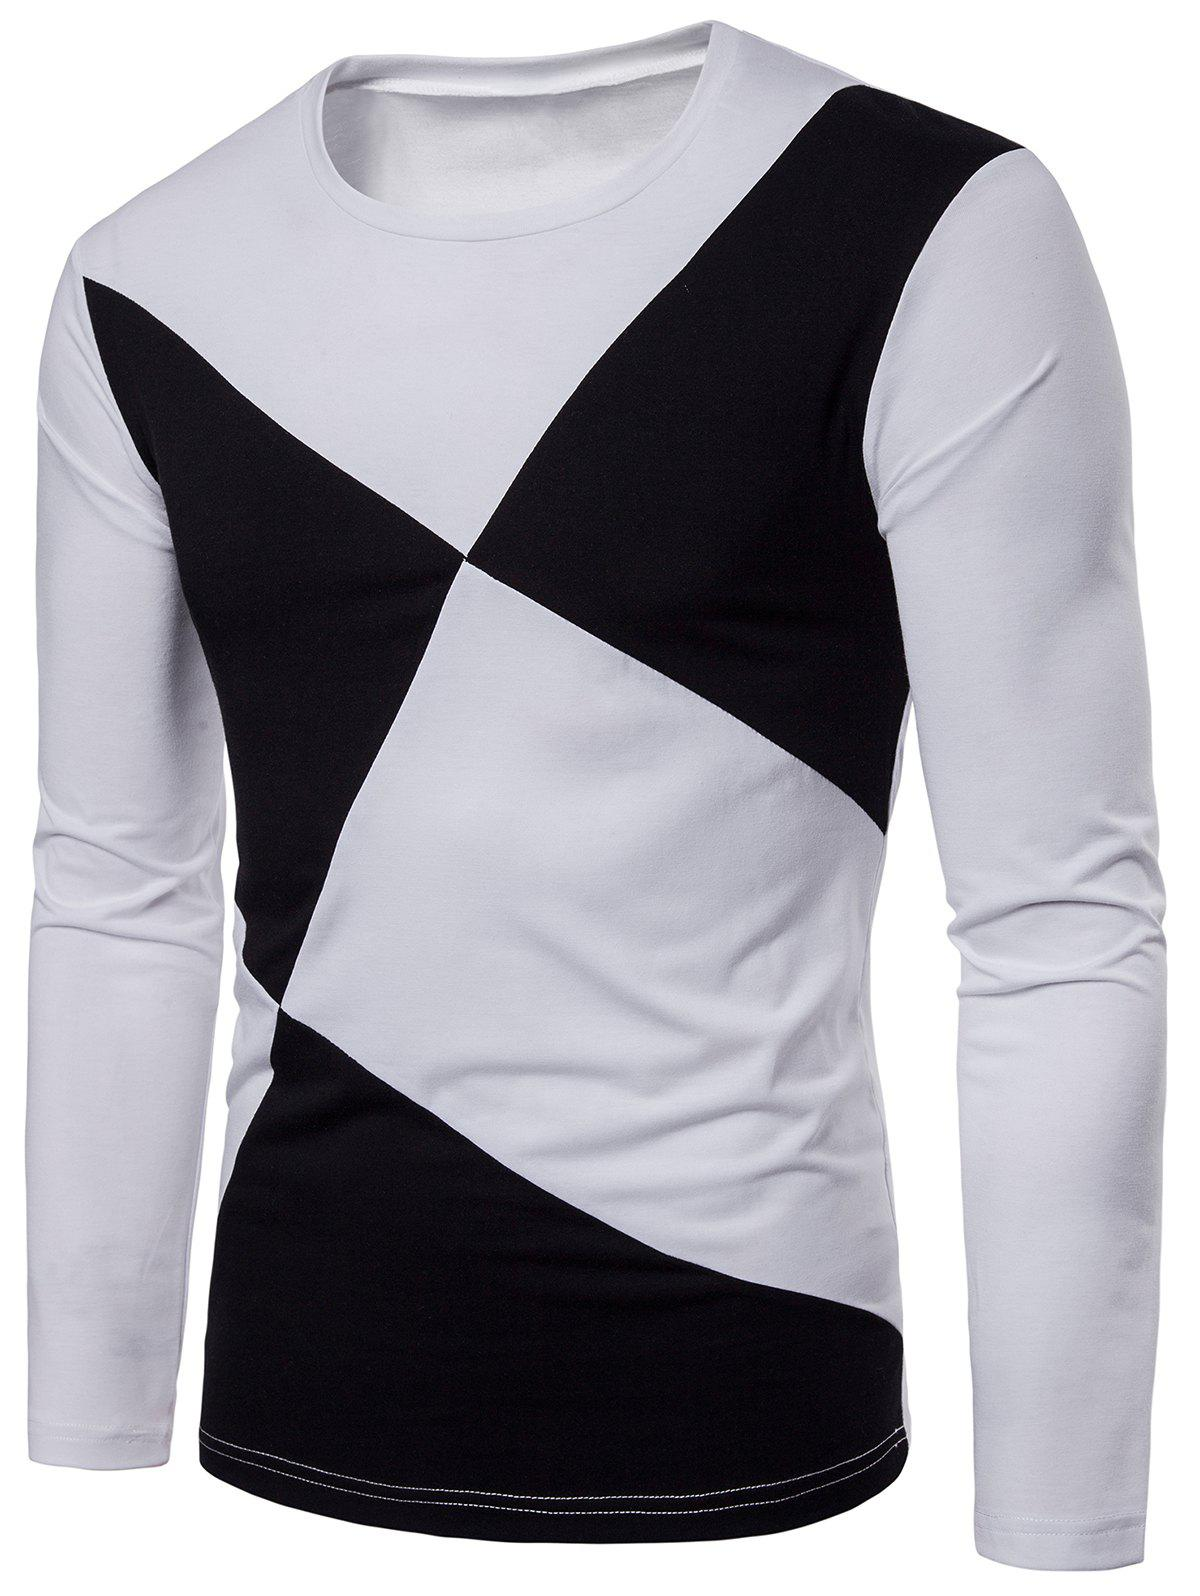 Online Cross Contrast Patch Design Long Sleeve T-shirt